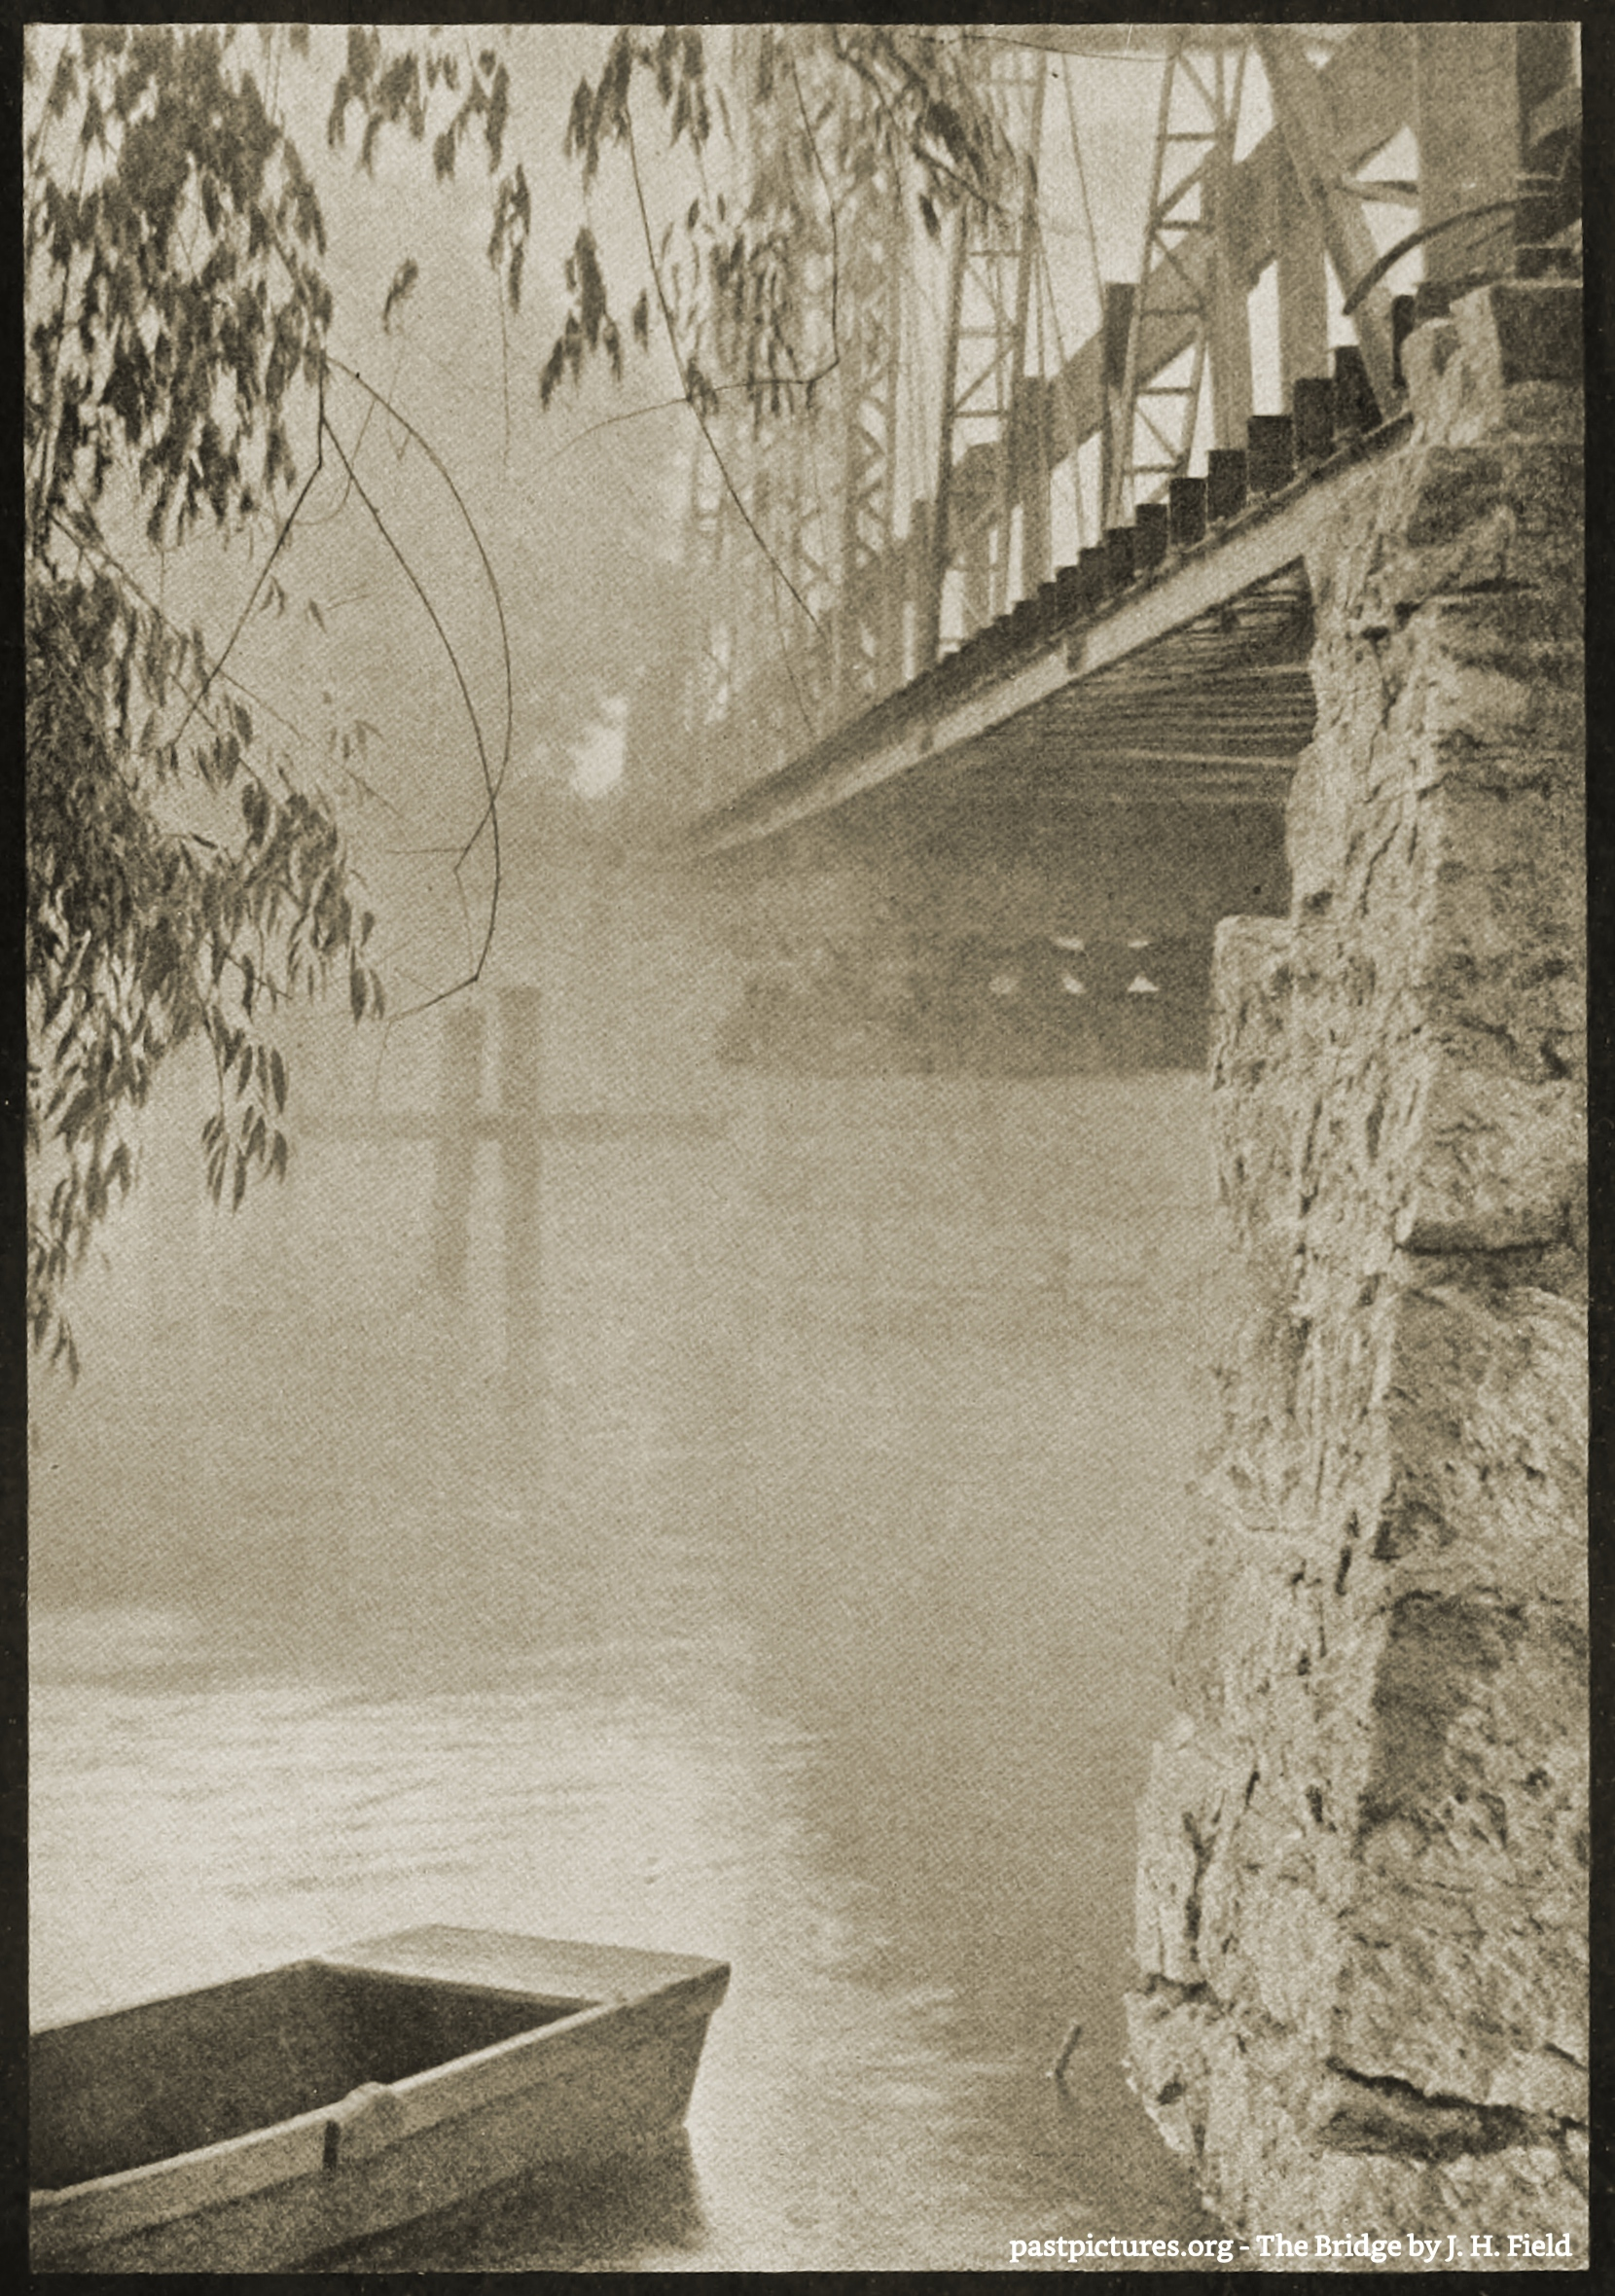 The Bridge by J. H. Field about 1908